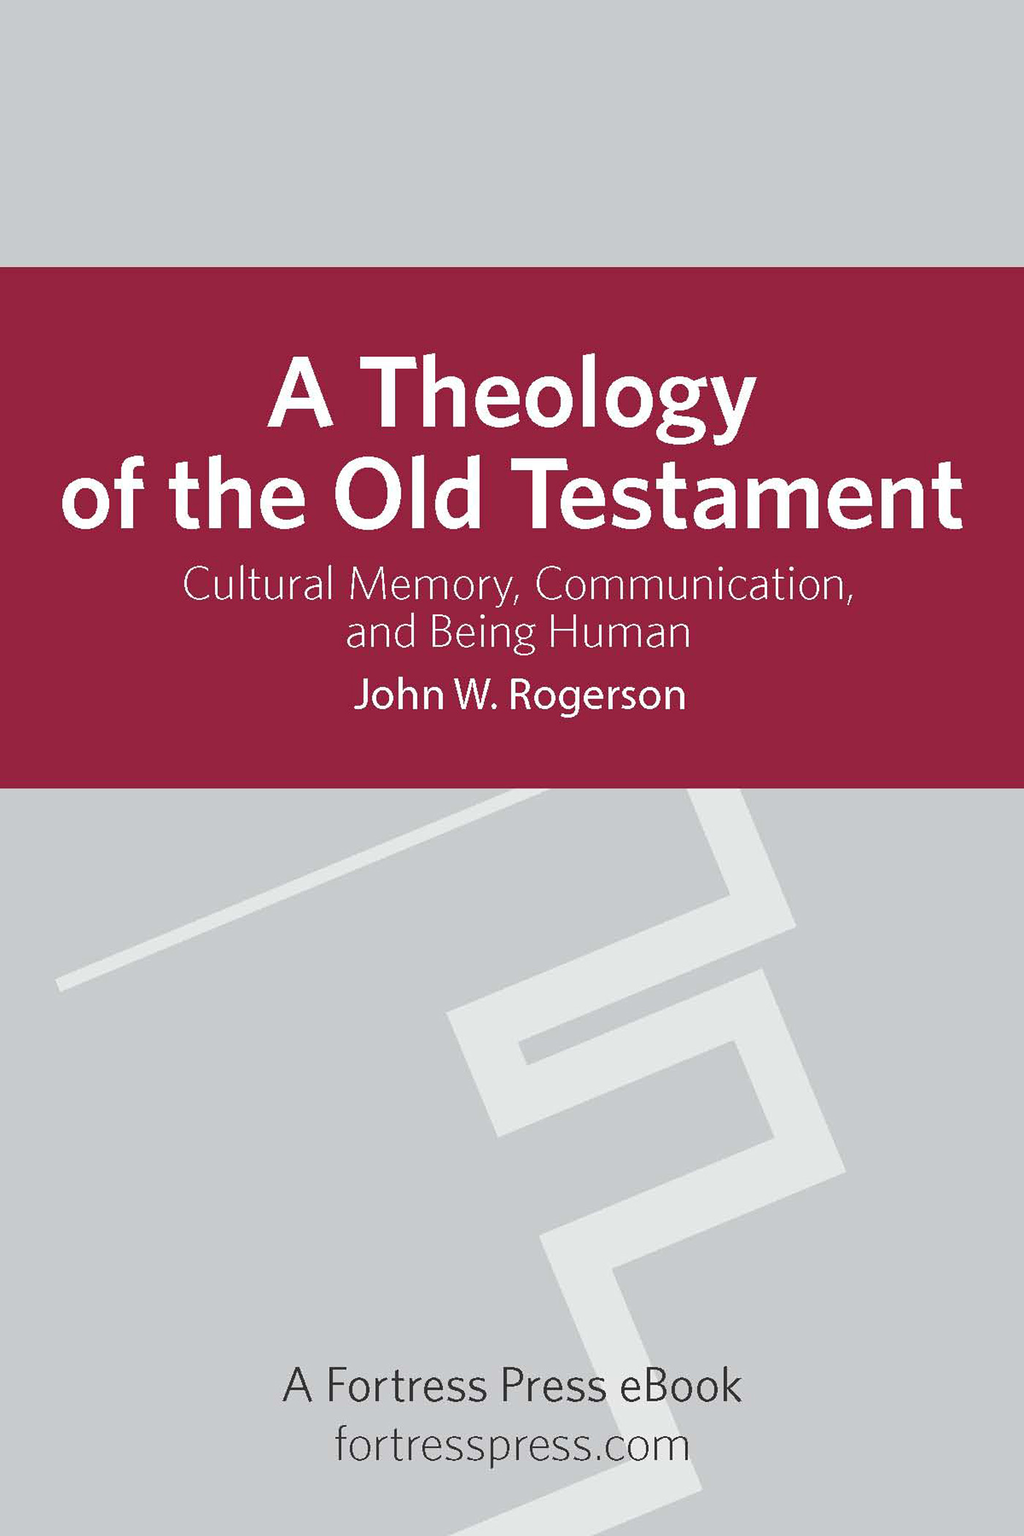 A Theology of the Old Testament